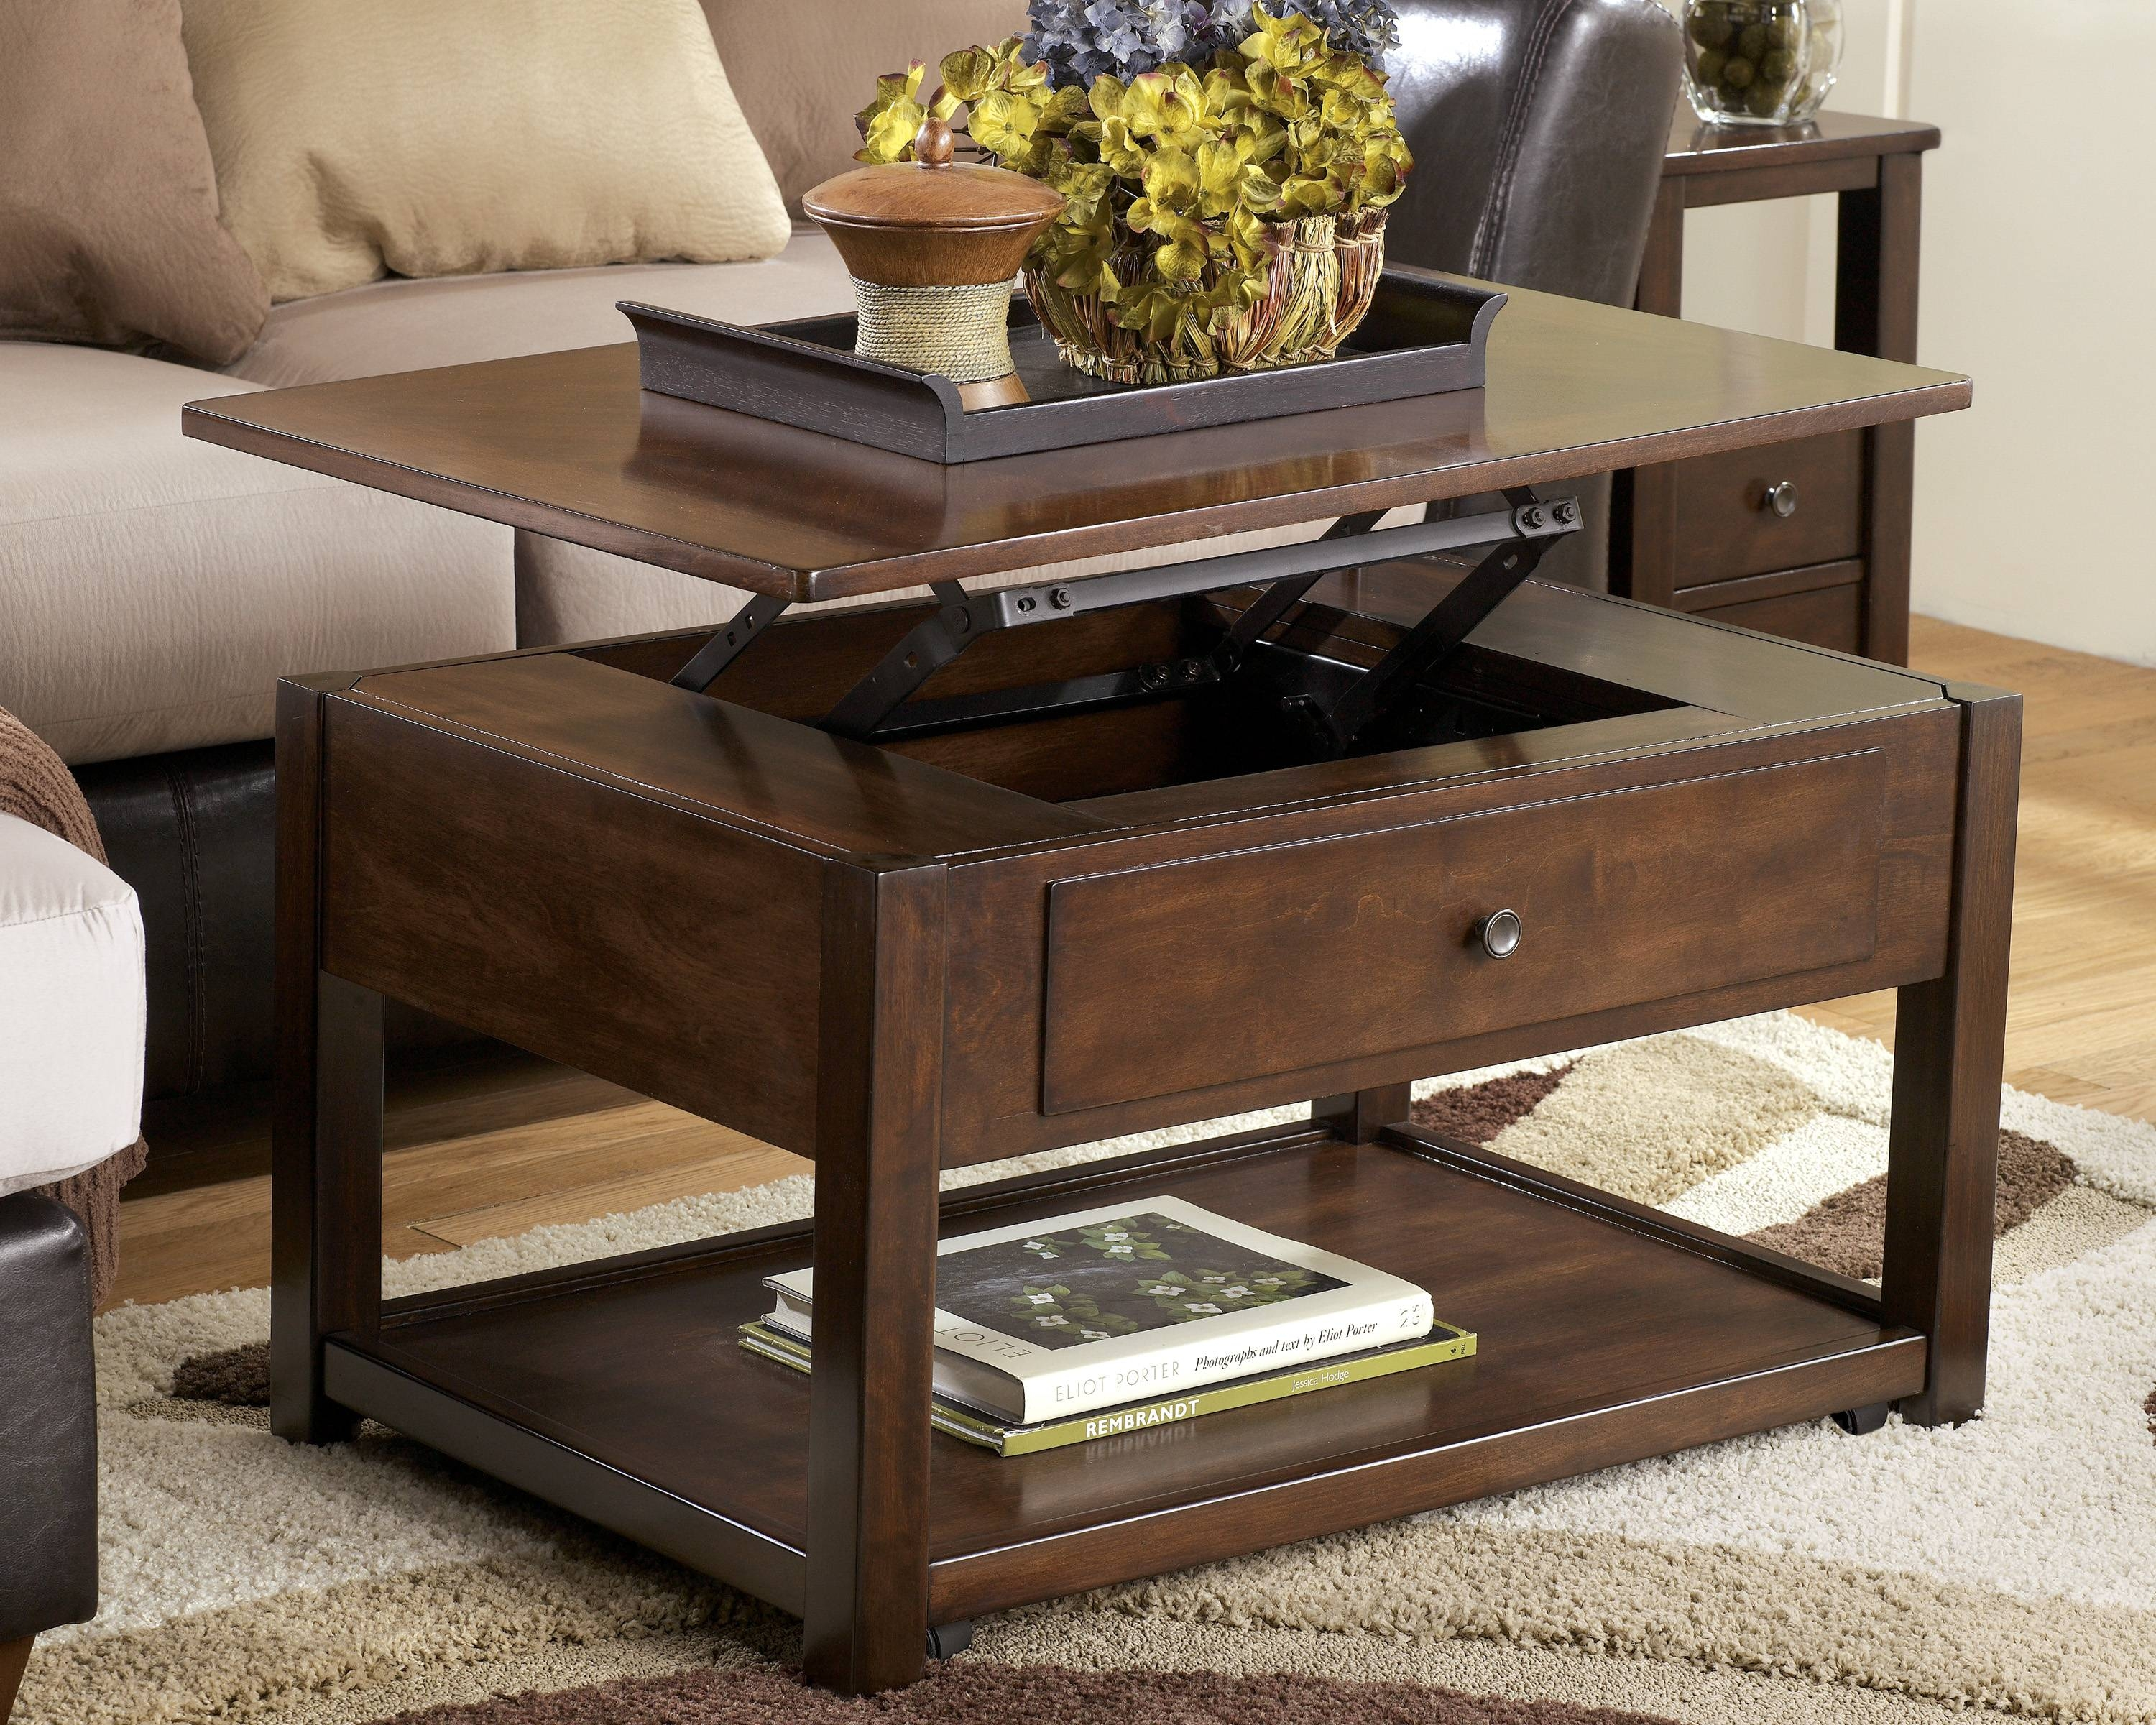 Lift-Top-Coffee-Tables regarding Coffee Tables With Lift Up Top (Image 20 of 30)